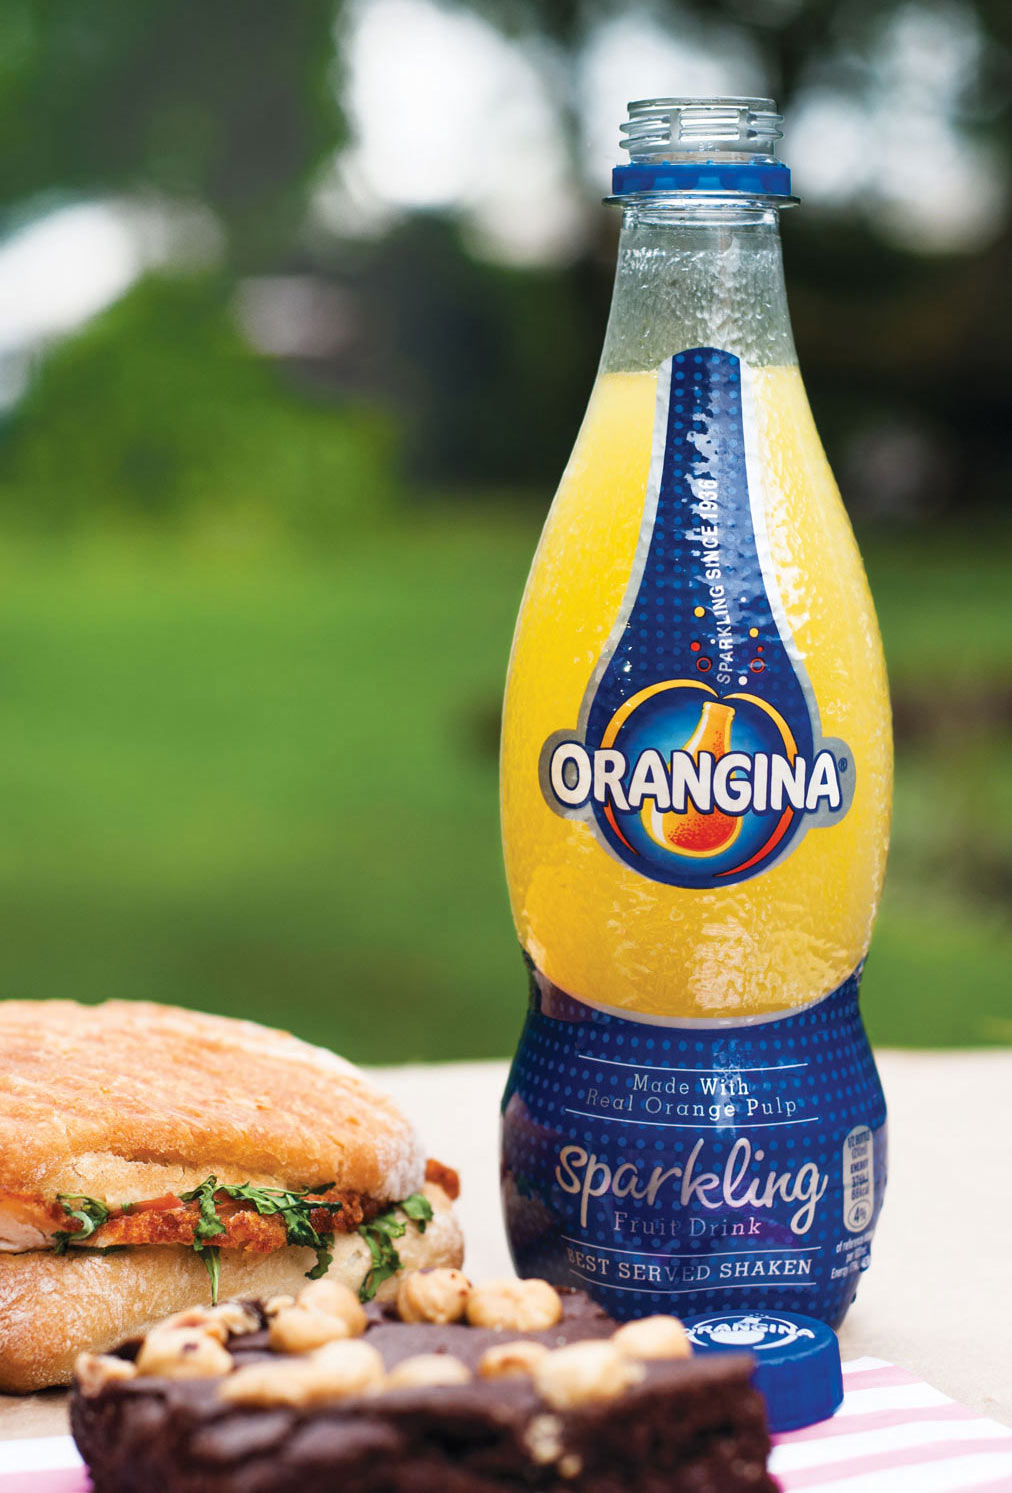 Orangina Plastic Bottle Design